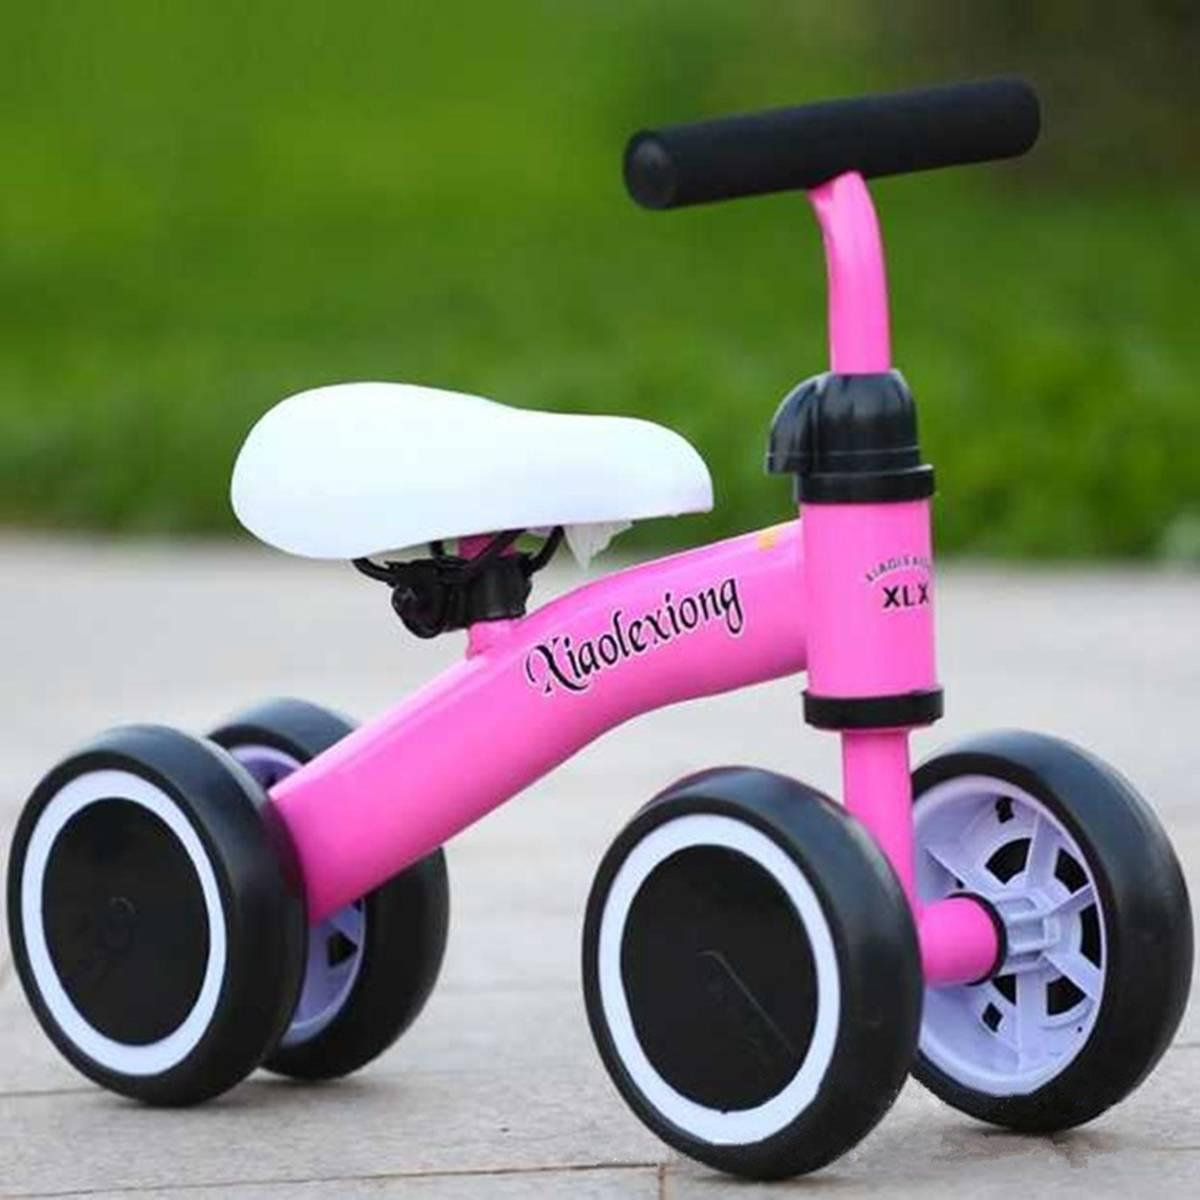 Baby Balance Tricycle Baby Walker Riding Toys for Kids 1-2 Years Child Bike Children's Bicycle Wear Resistant Three Wheel Bike